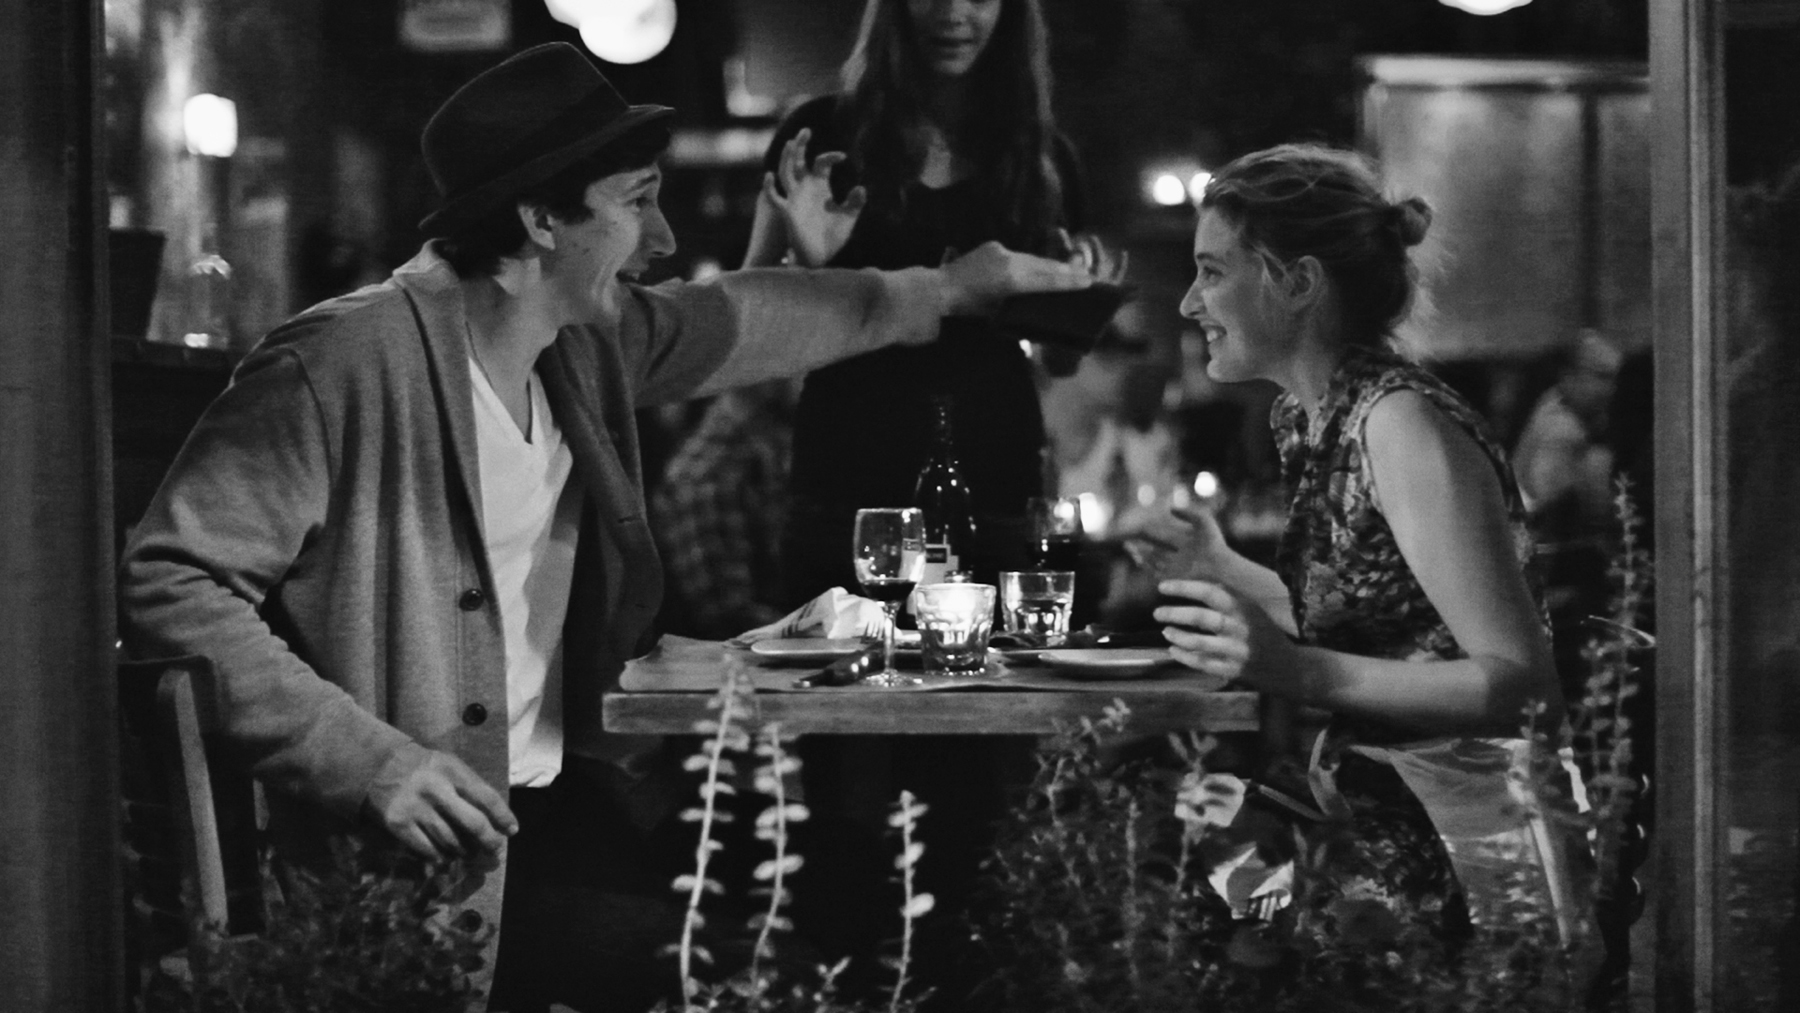 A scene from Noah Baumbach's FRANCES HA, playing at the 56th San Francisco International Film Festival, April 25 - May 9, 2013.